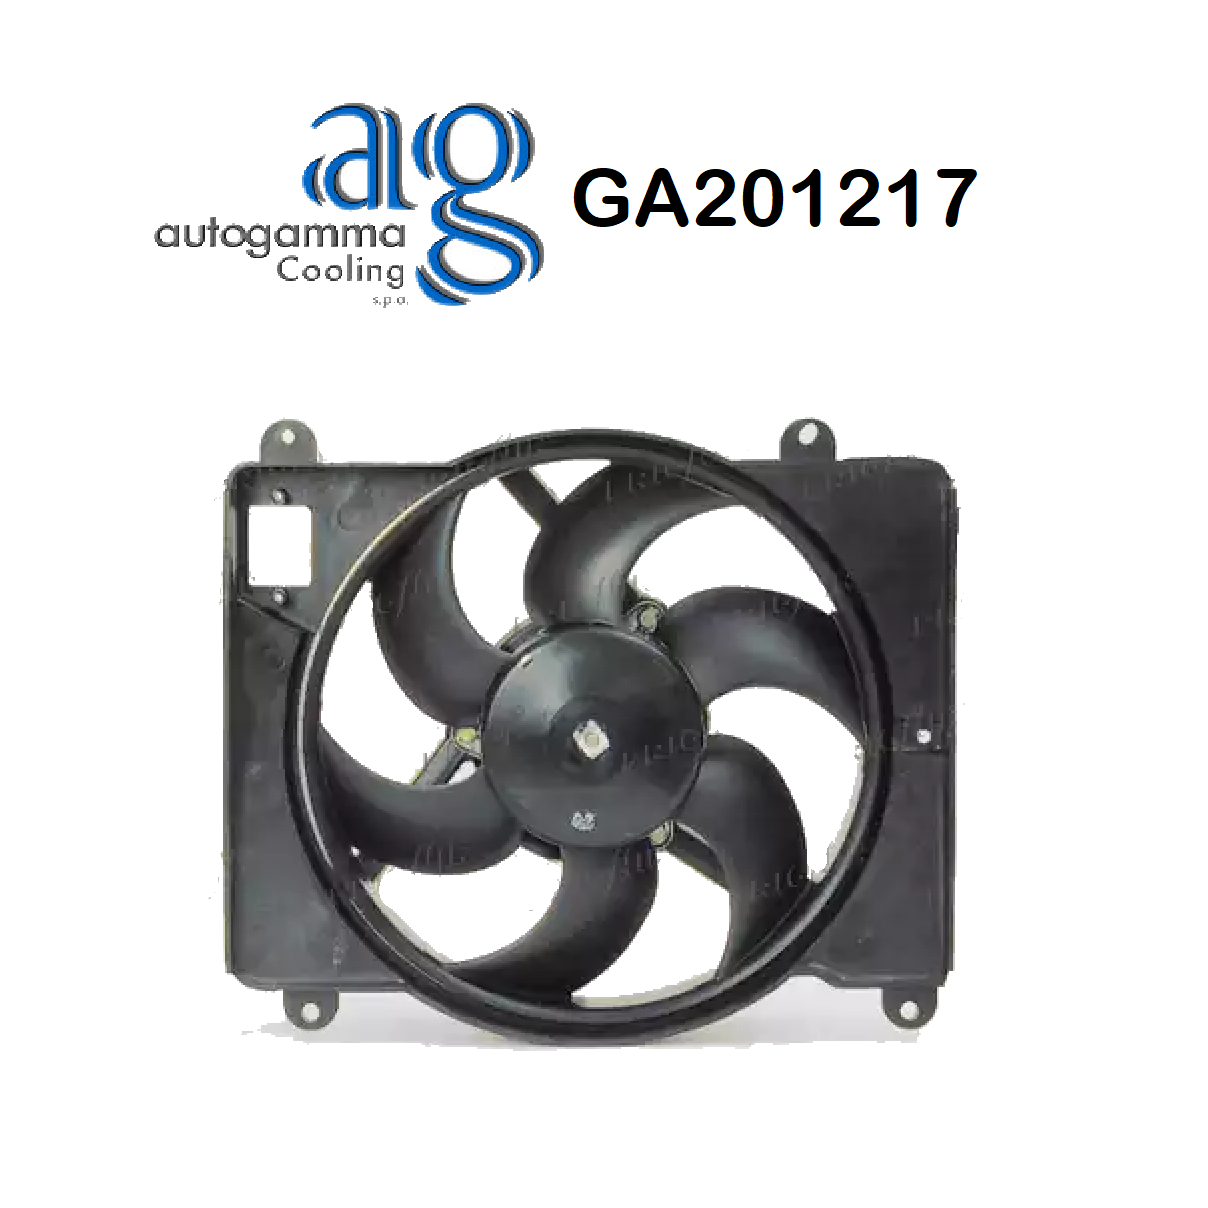 FIAT PUNTO ENGINE COOLING FAN - LANCIA Y AUTOGAMMA FOR 46406189